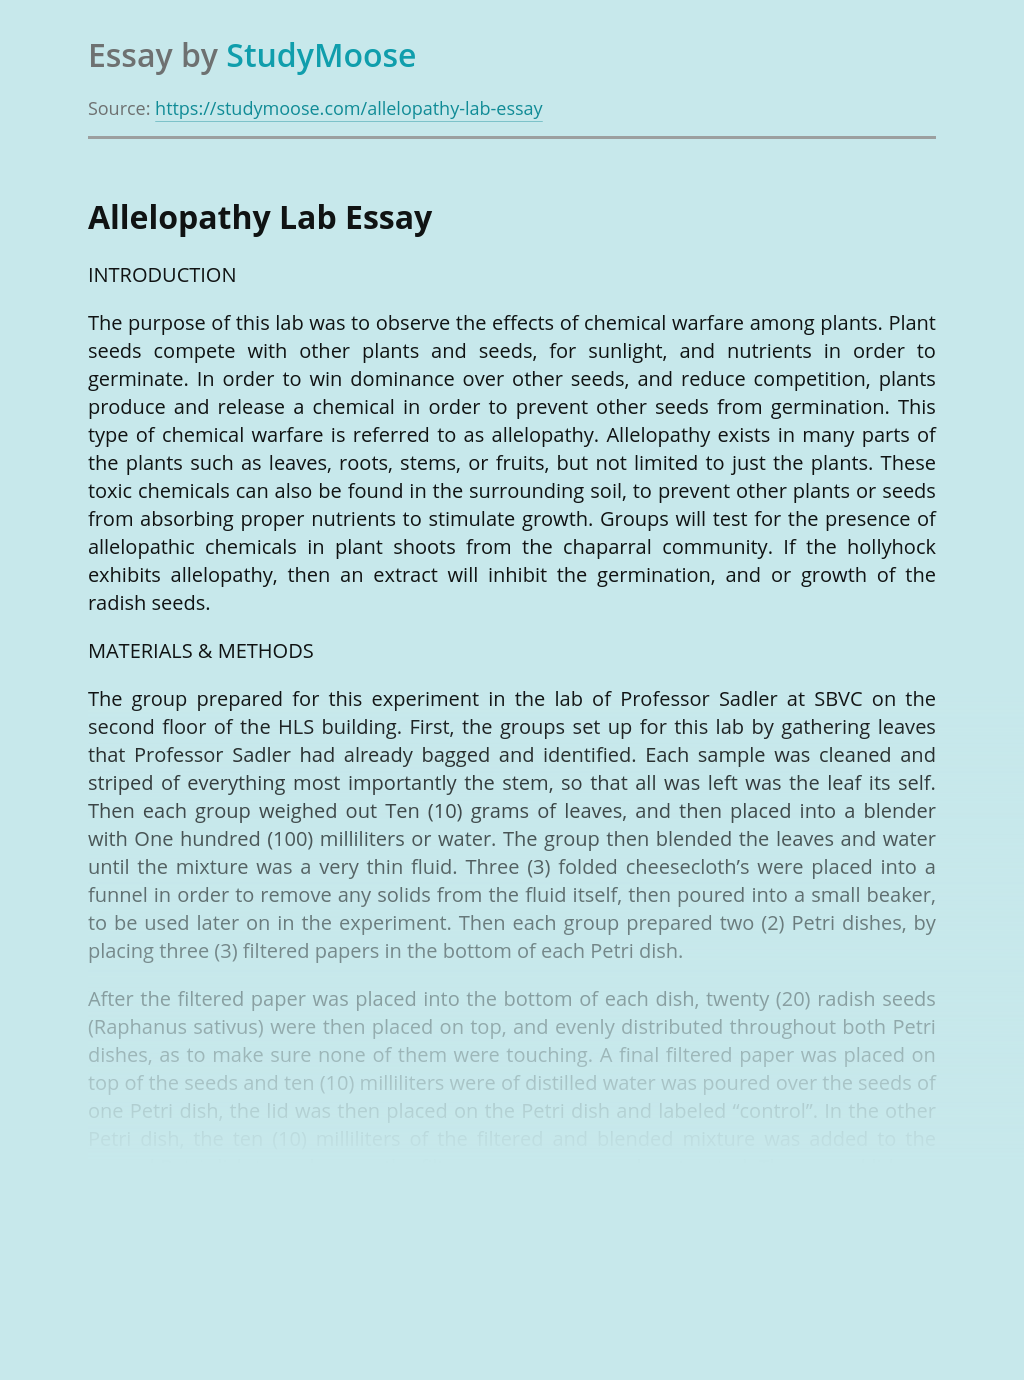 Allelopathy Lab Report